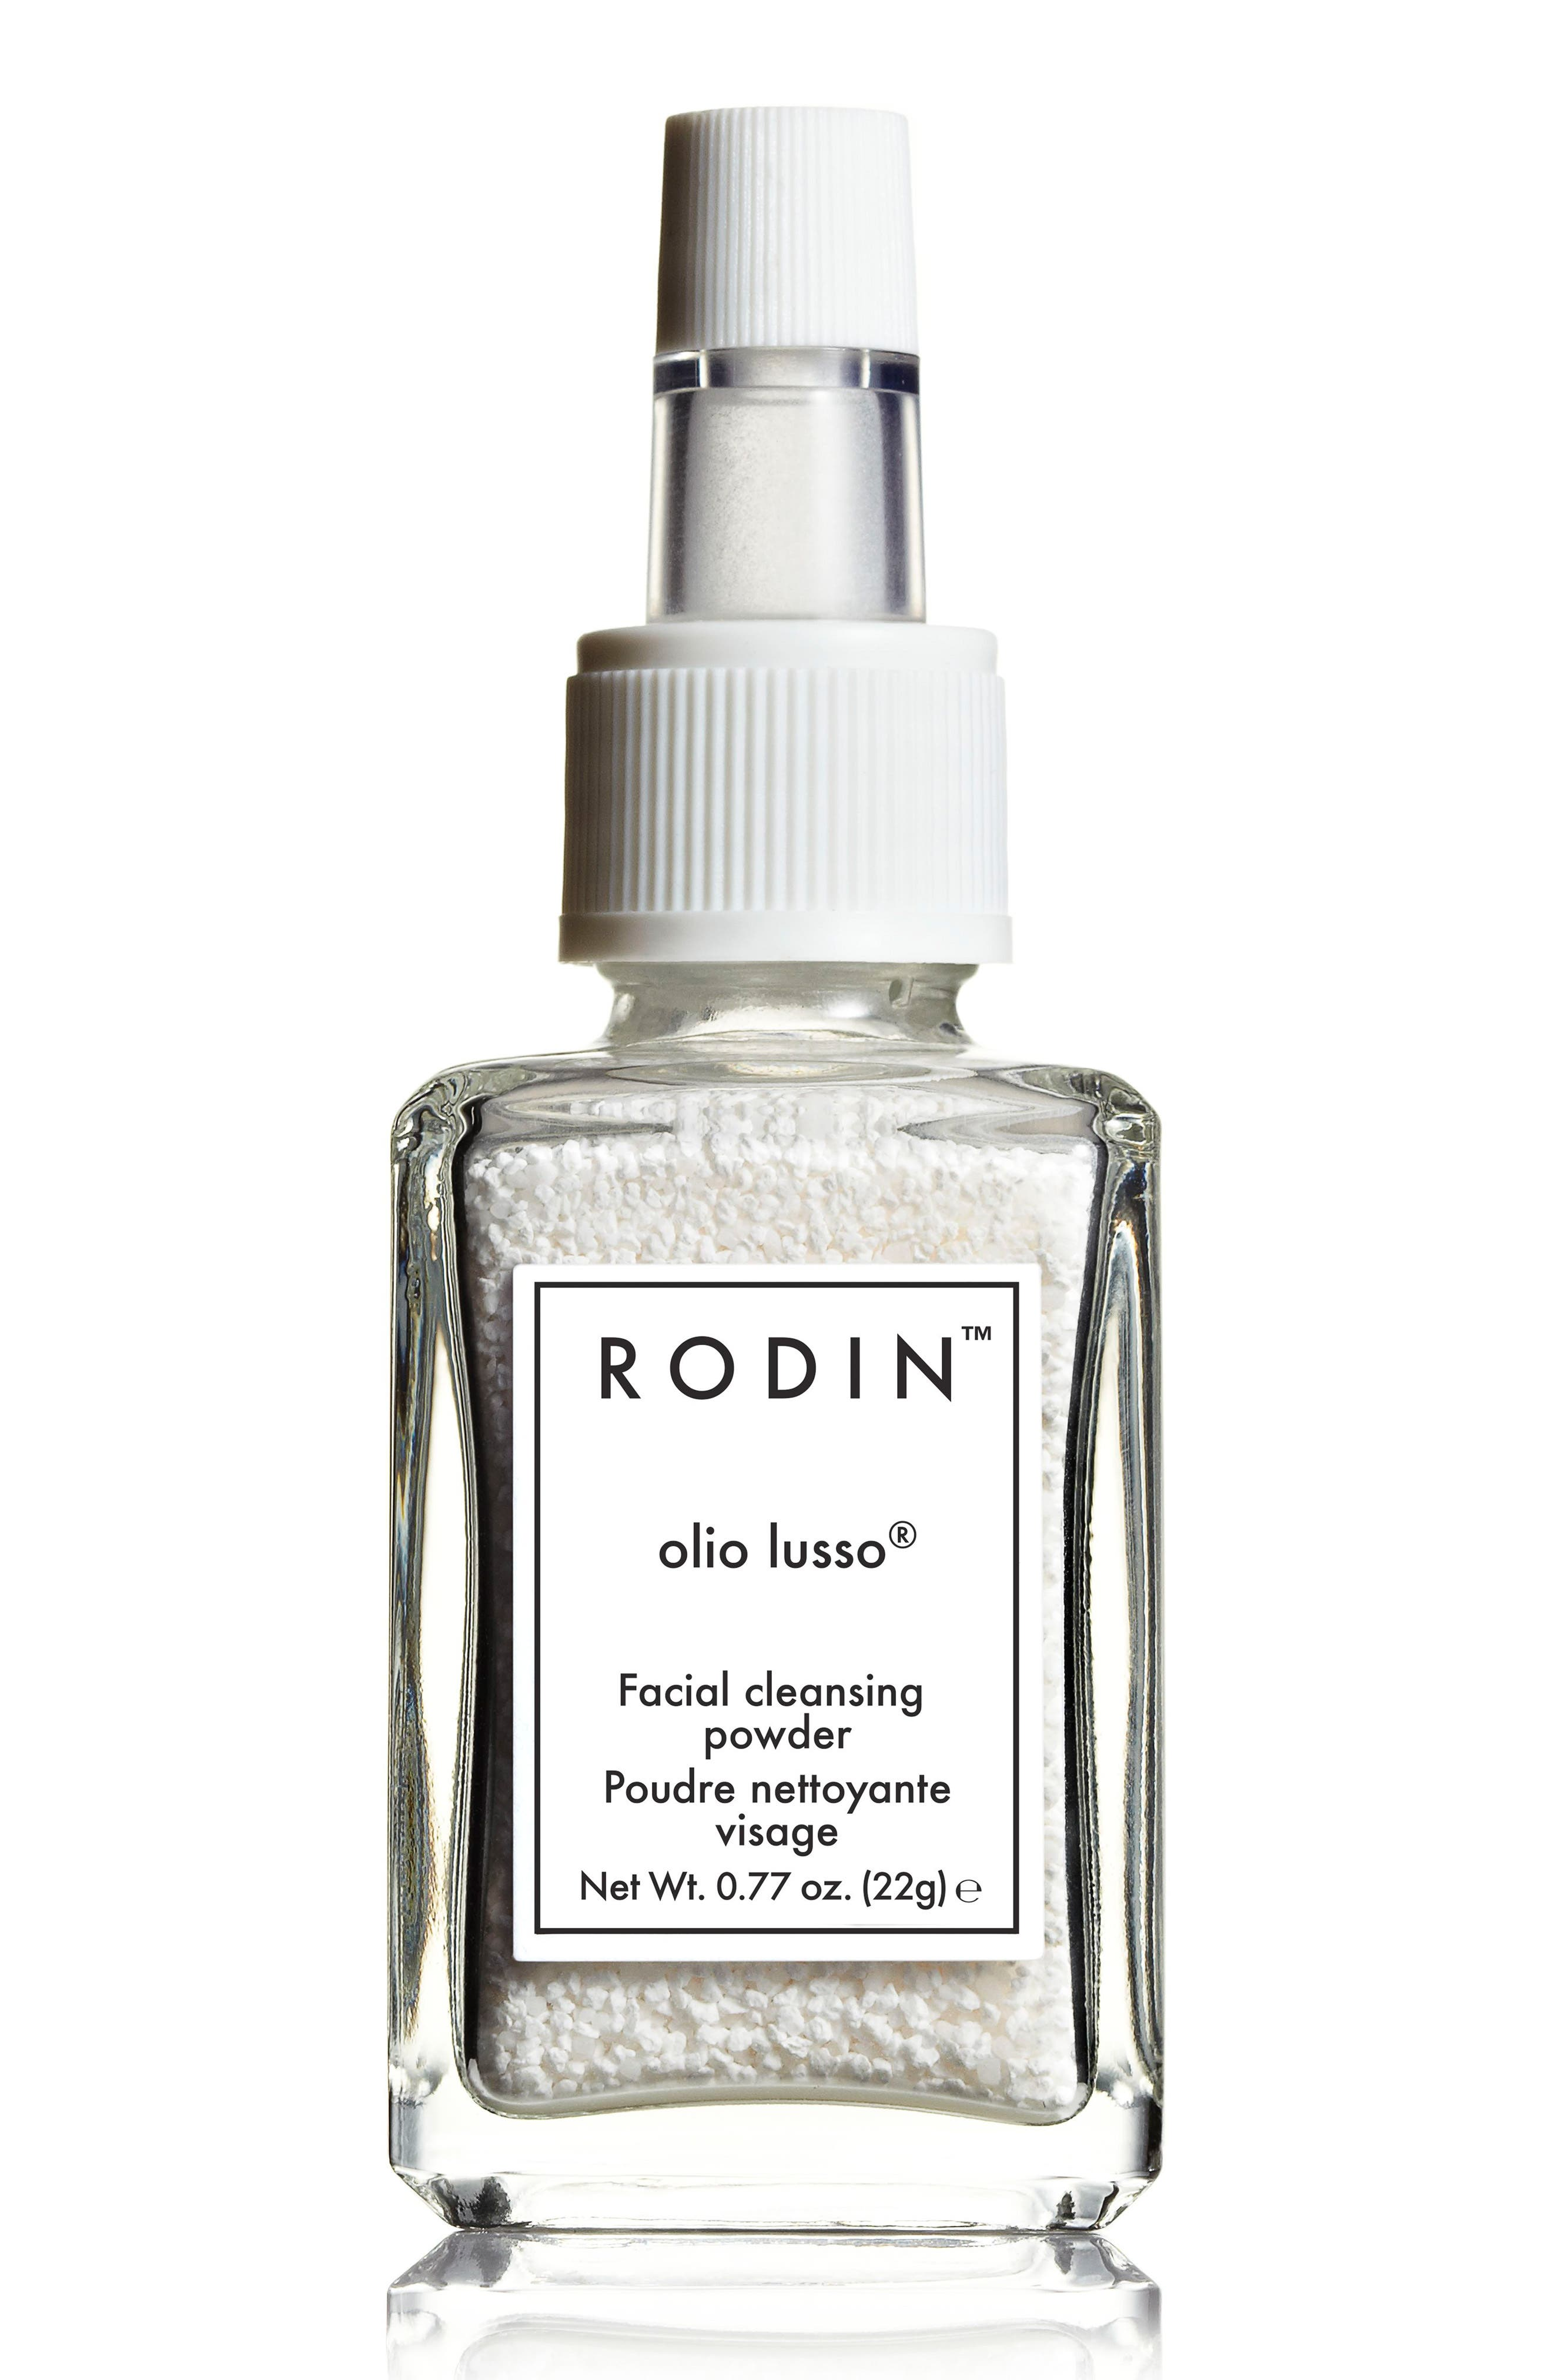 RODIN OLIO LUSSO,                             Facial Cleansing Powder,                             Alternate thumbnail 4, color,                             NO COLOR